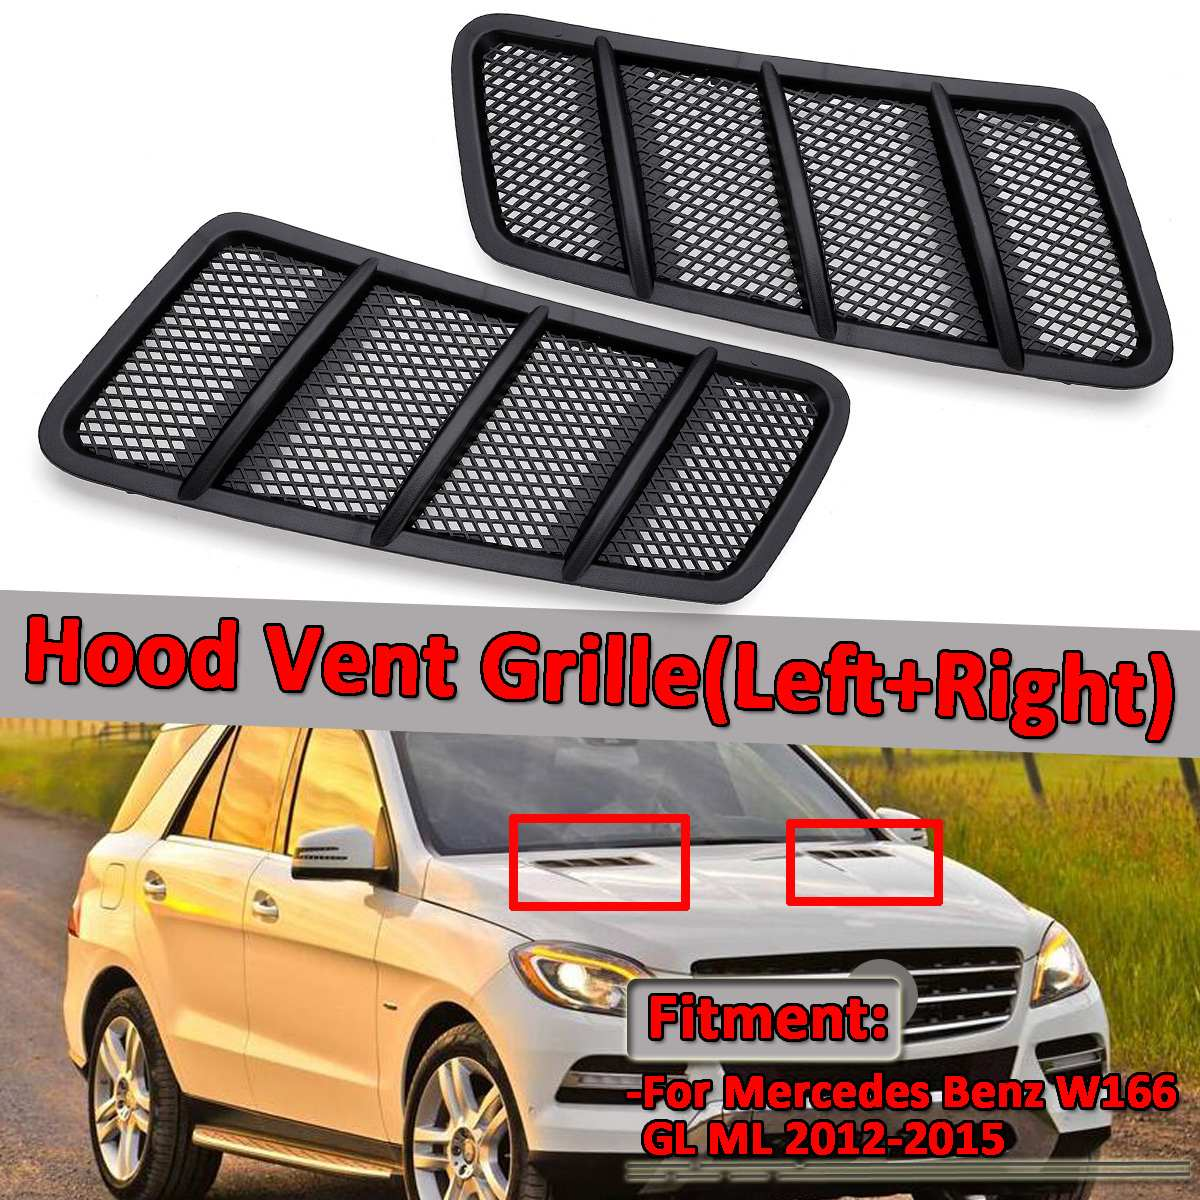 Car Front Hood Vent Grille Air Flow Intake Hood For Mercedes For Benz W166 GL GL350 GL450 GL550 ML ML350 ML550 2012-2015Car Front Hood Vent Grille Air Flow Intake Hood For Mercedes For Benz W166 GL GL350 GL450 GL550 ML ML350 ML550 2012-2015